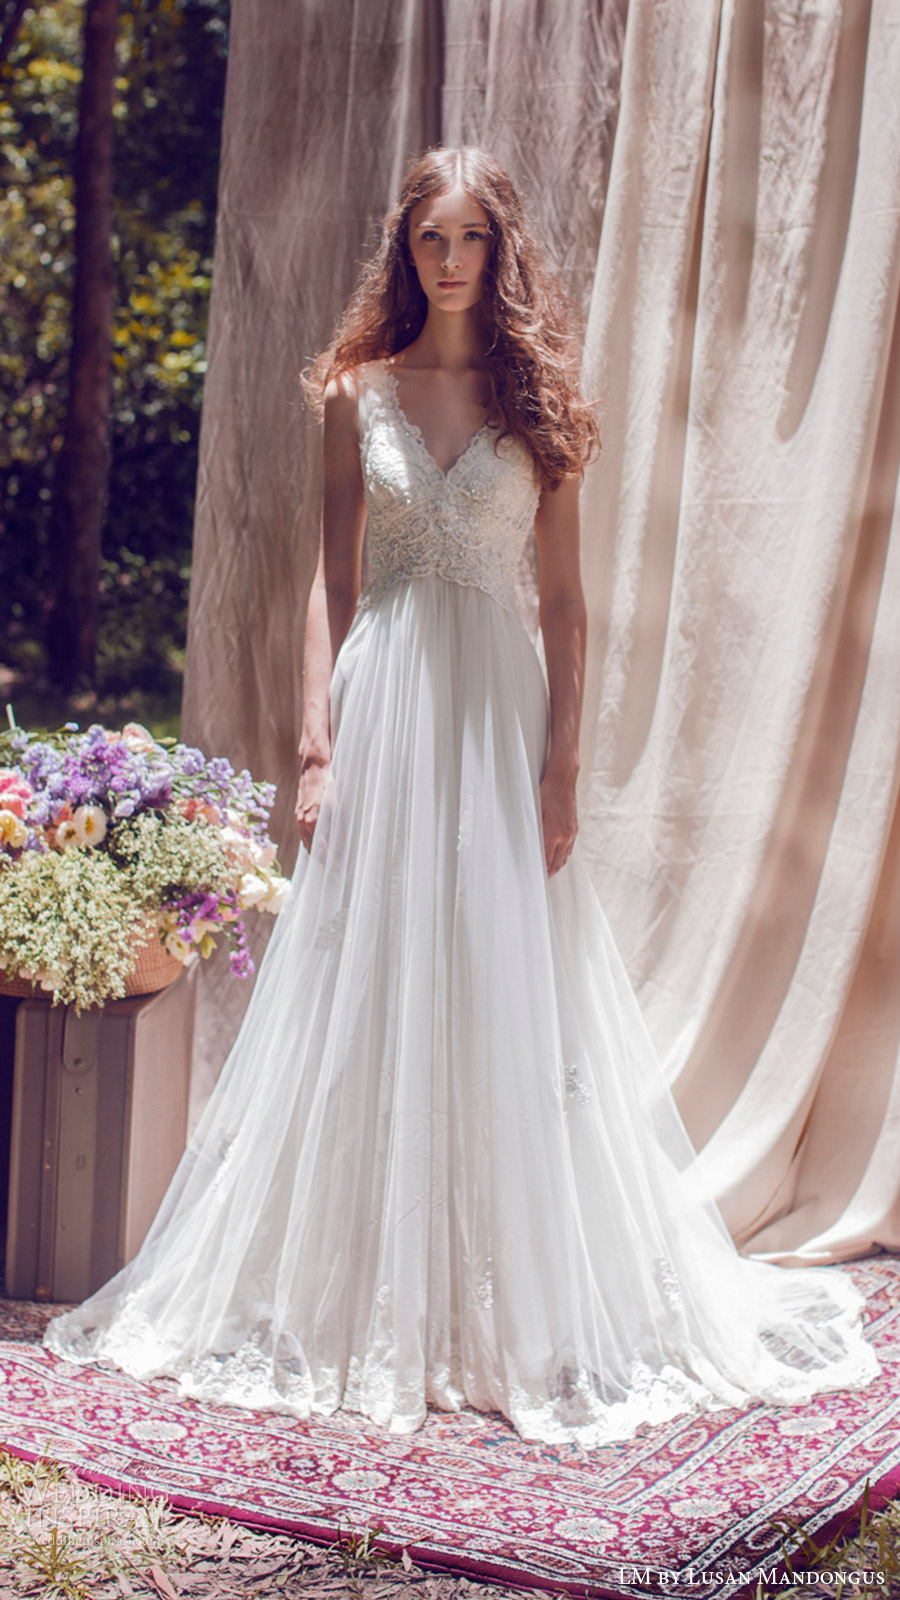 lm lusan mandongus bridal 2017 sleeveless v neck a line lace bodice wedding dress (lm3148b) mv romantic